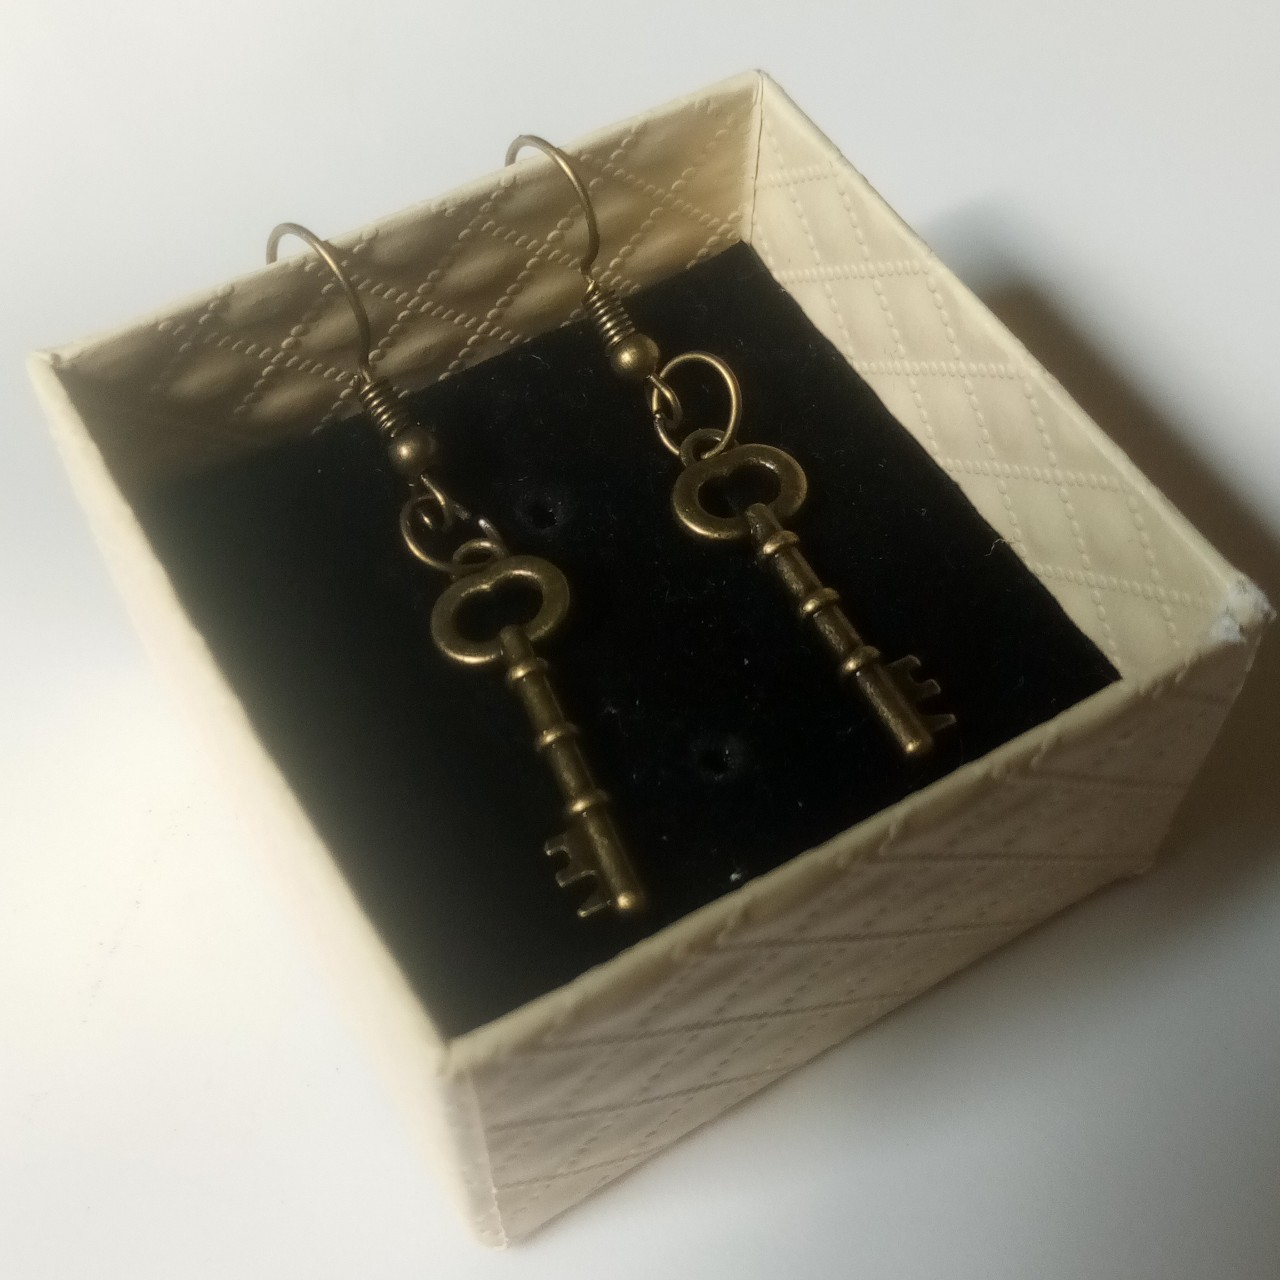 Product Image 1 - Key earrings  Nickle and lead free